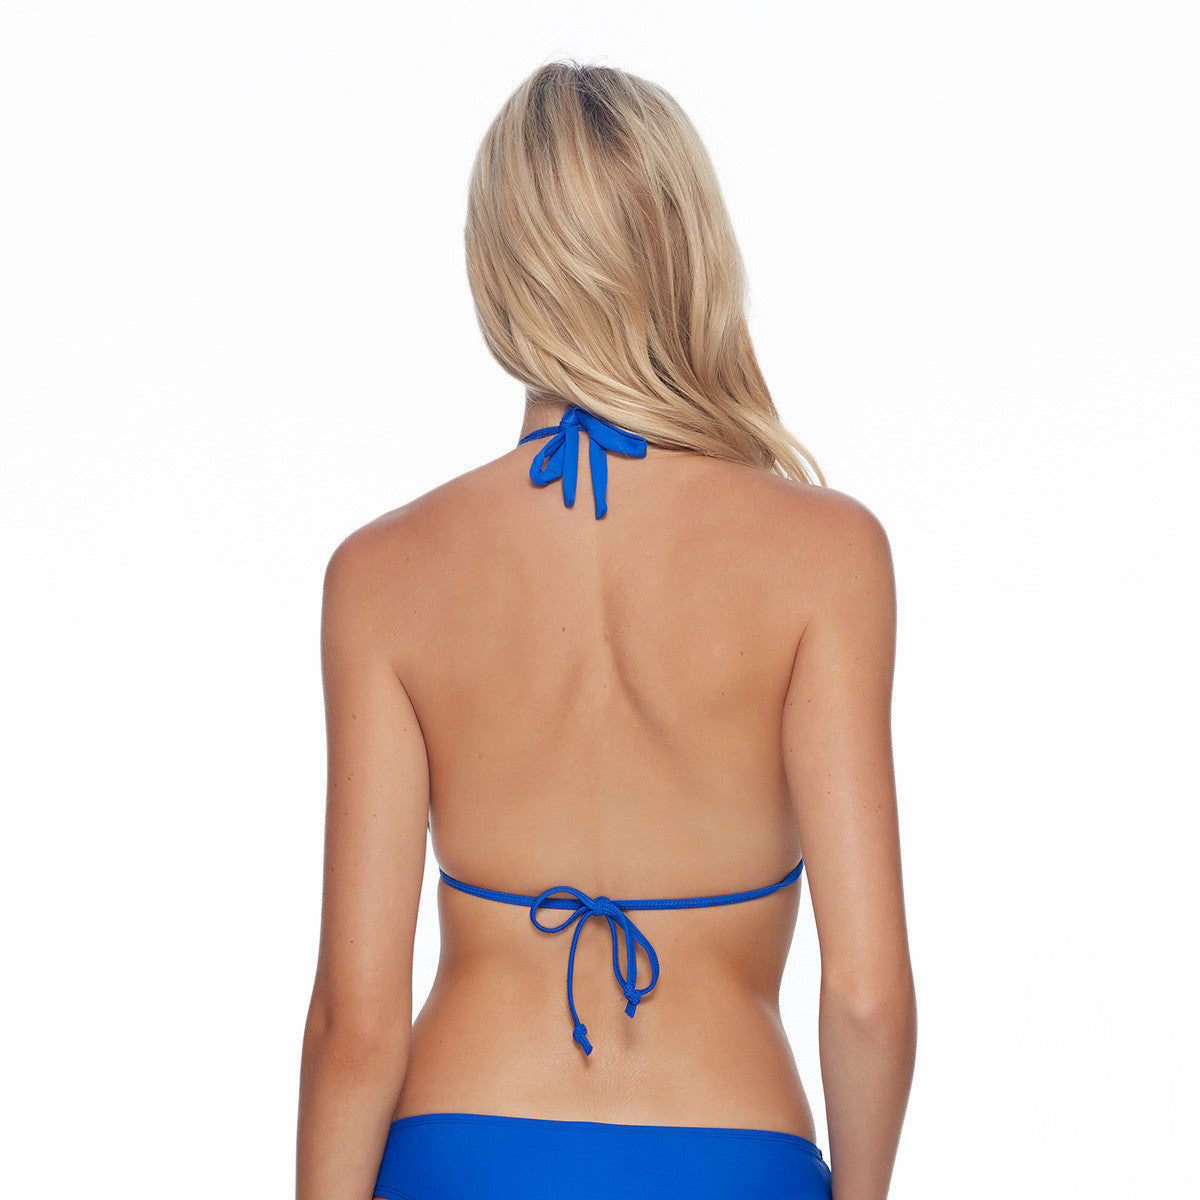 Body Glove Aida style Smoothies bikini top Triangle top Back tie closures Removable padding Lined Nylon/spandex Hand wash cold Top and bottom sold separately  blue